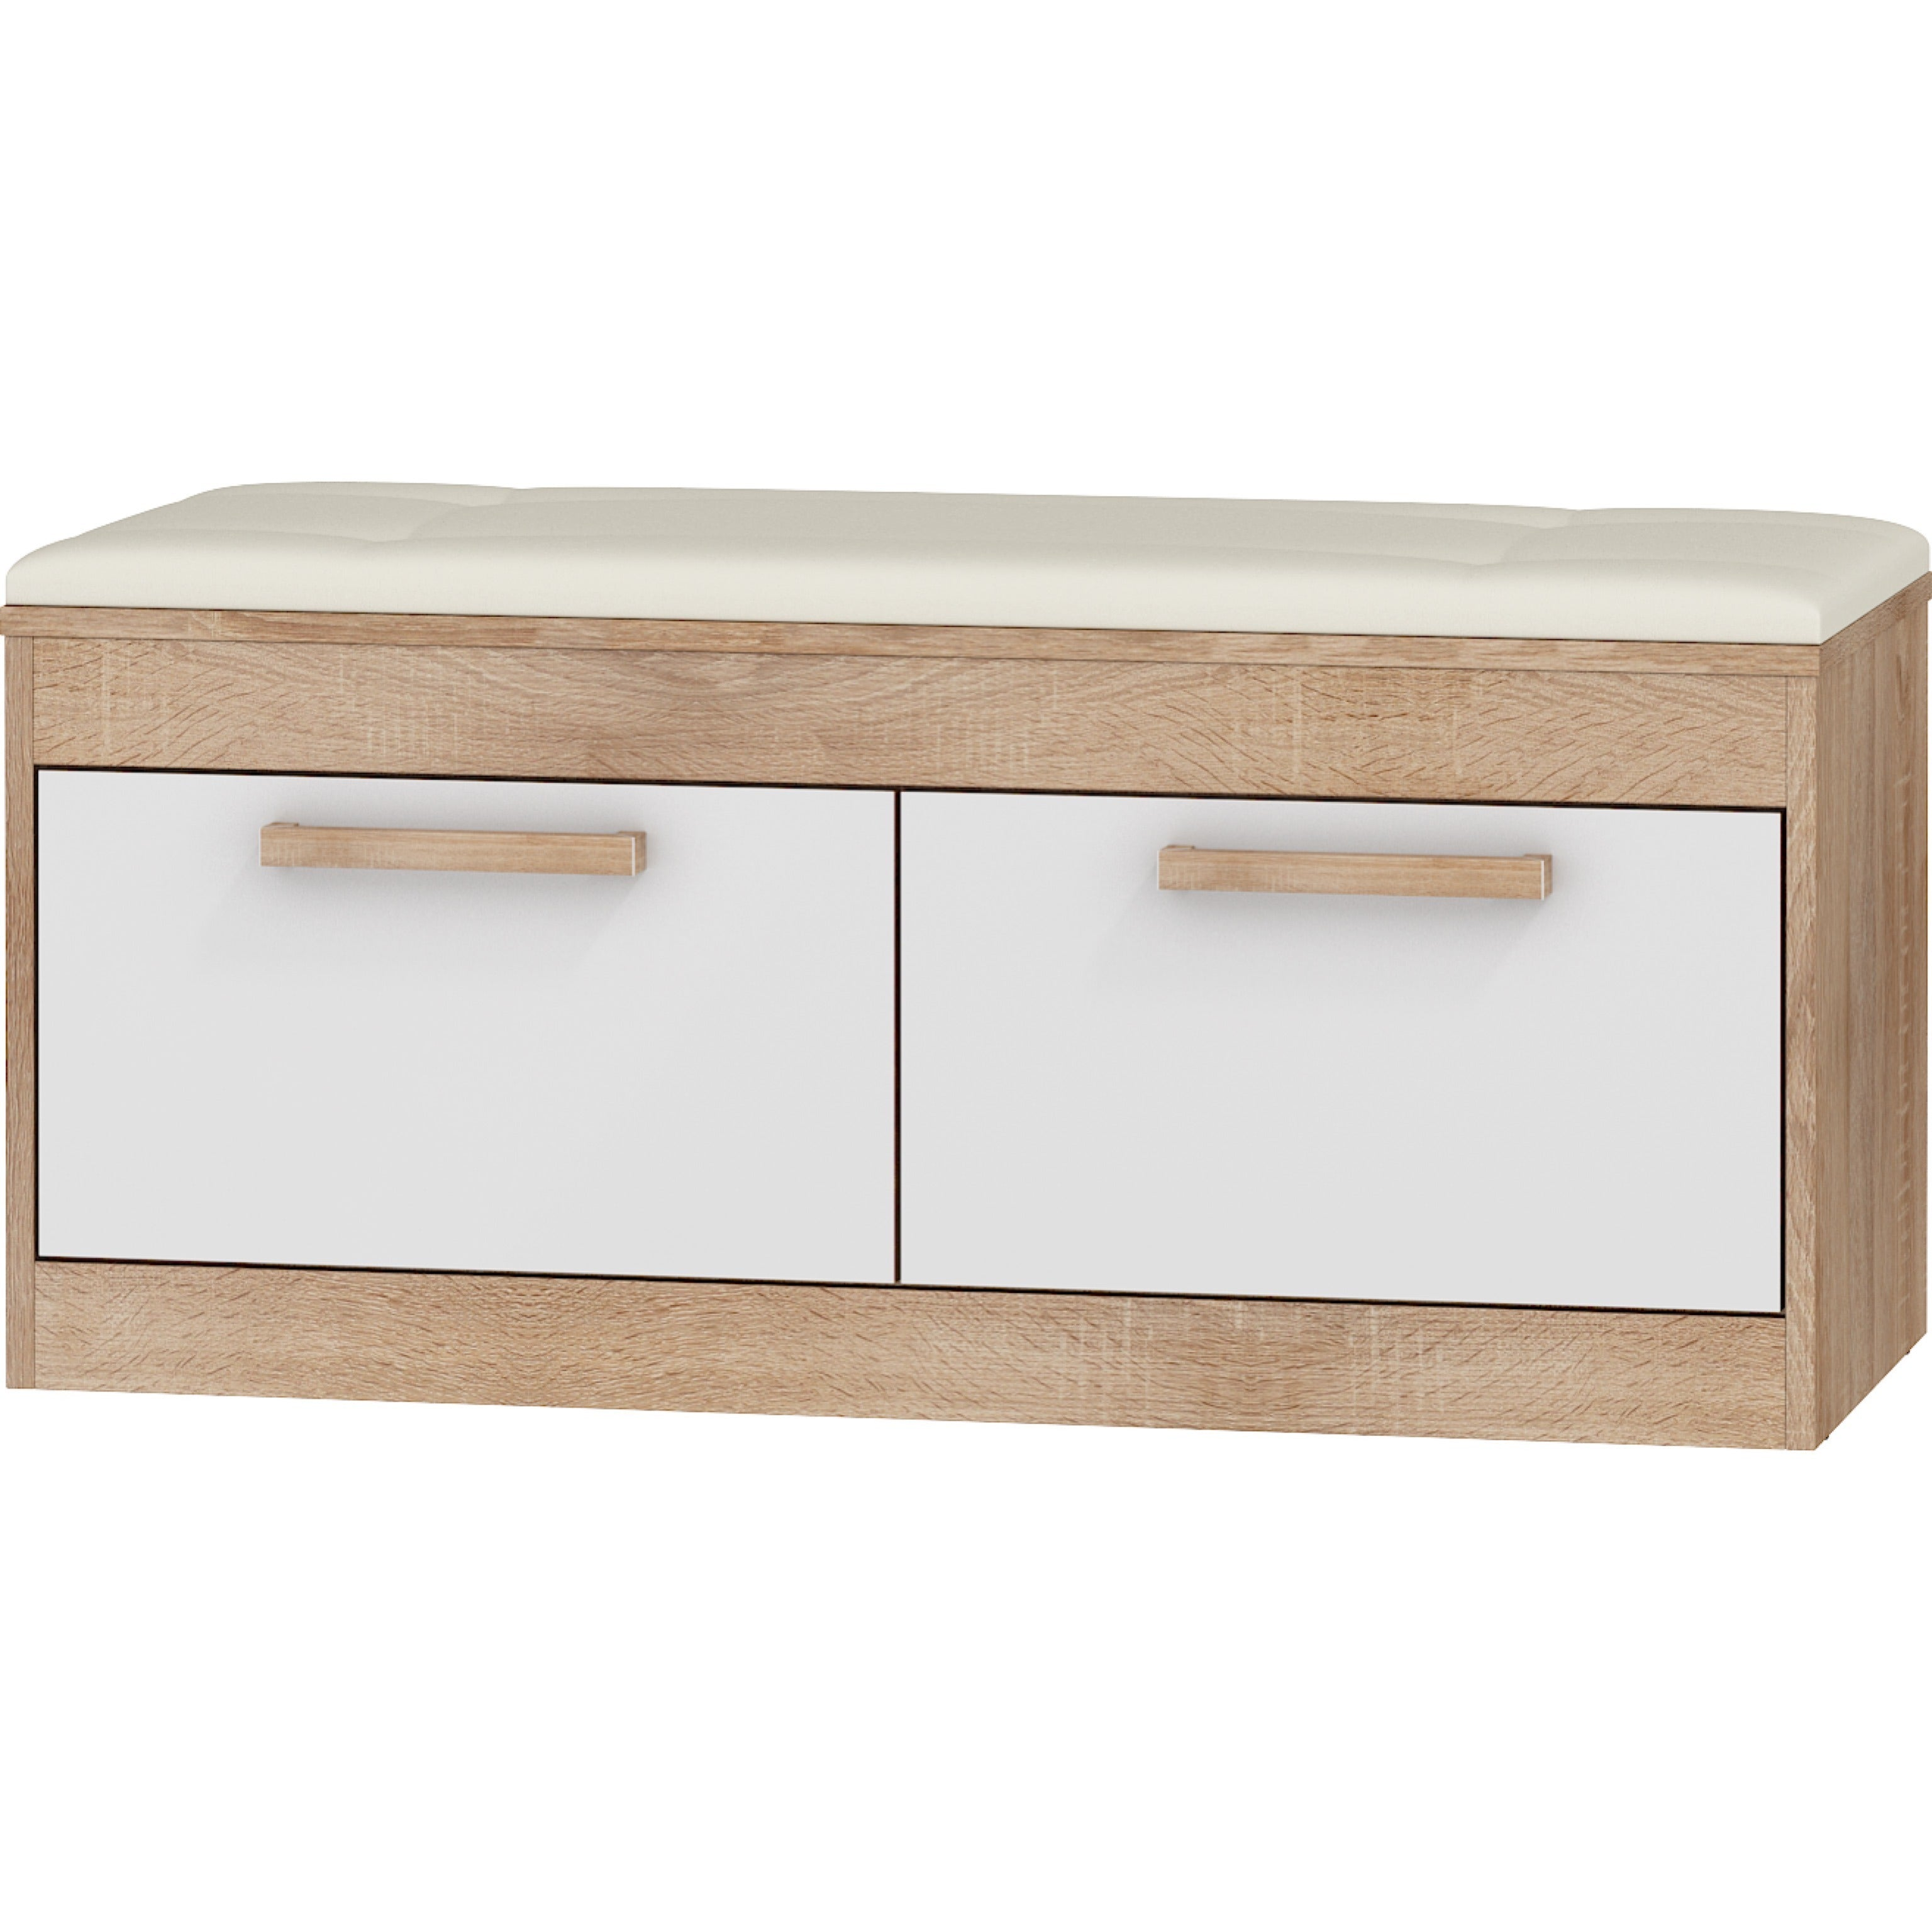 Maximus Upholstered 2 -Cabinet Entryway Storage Bench/ Shoe Cabinet